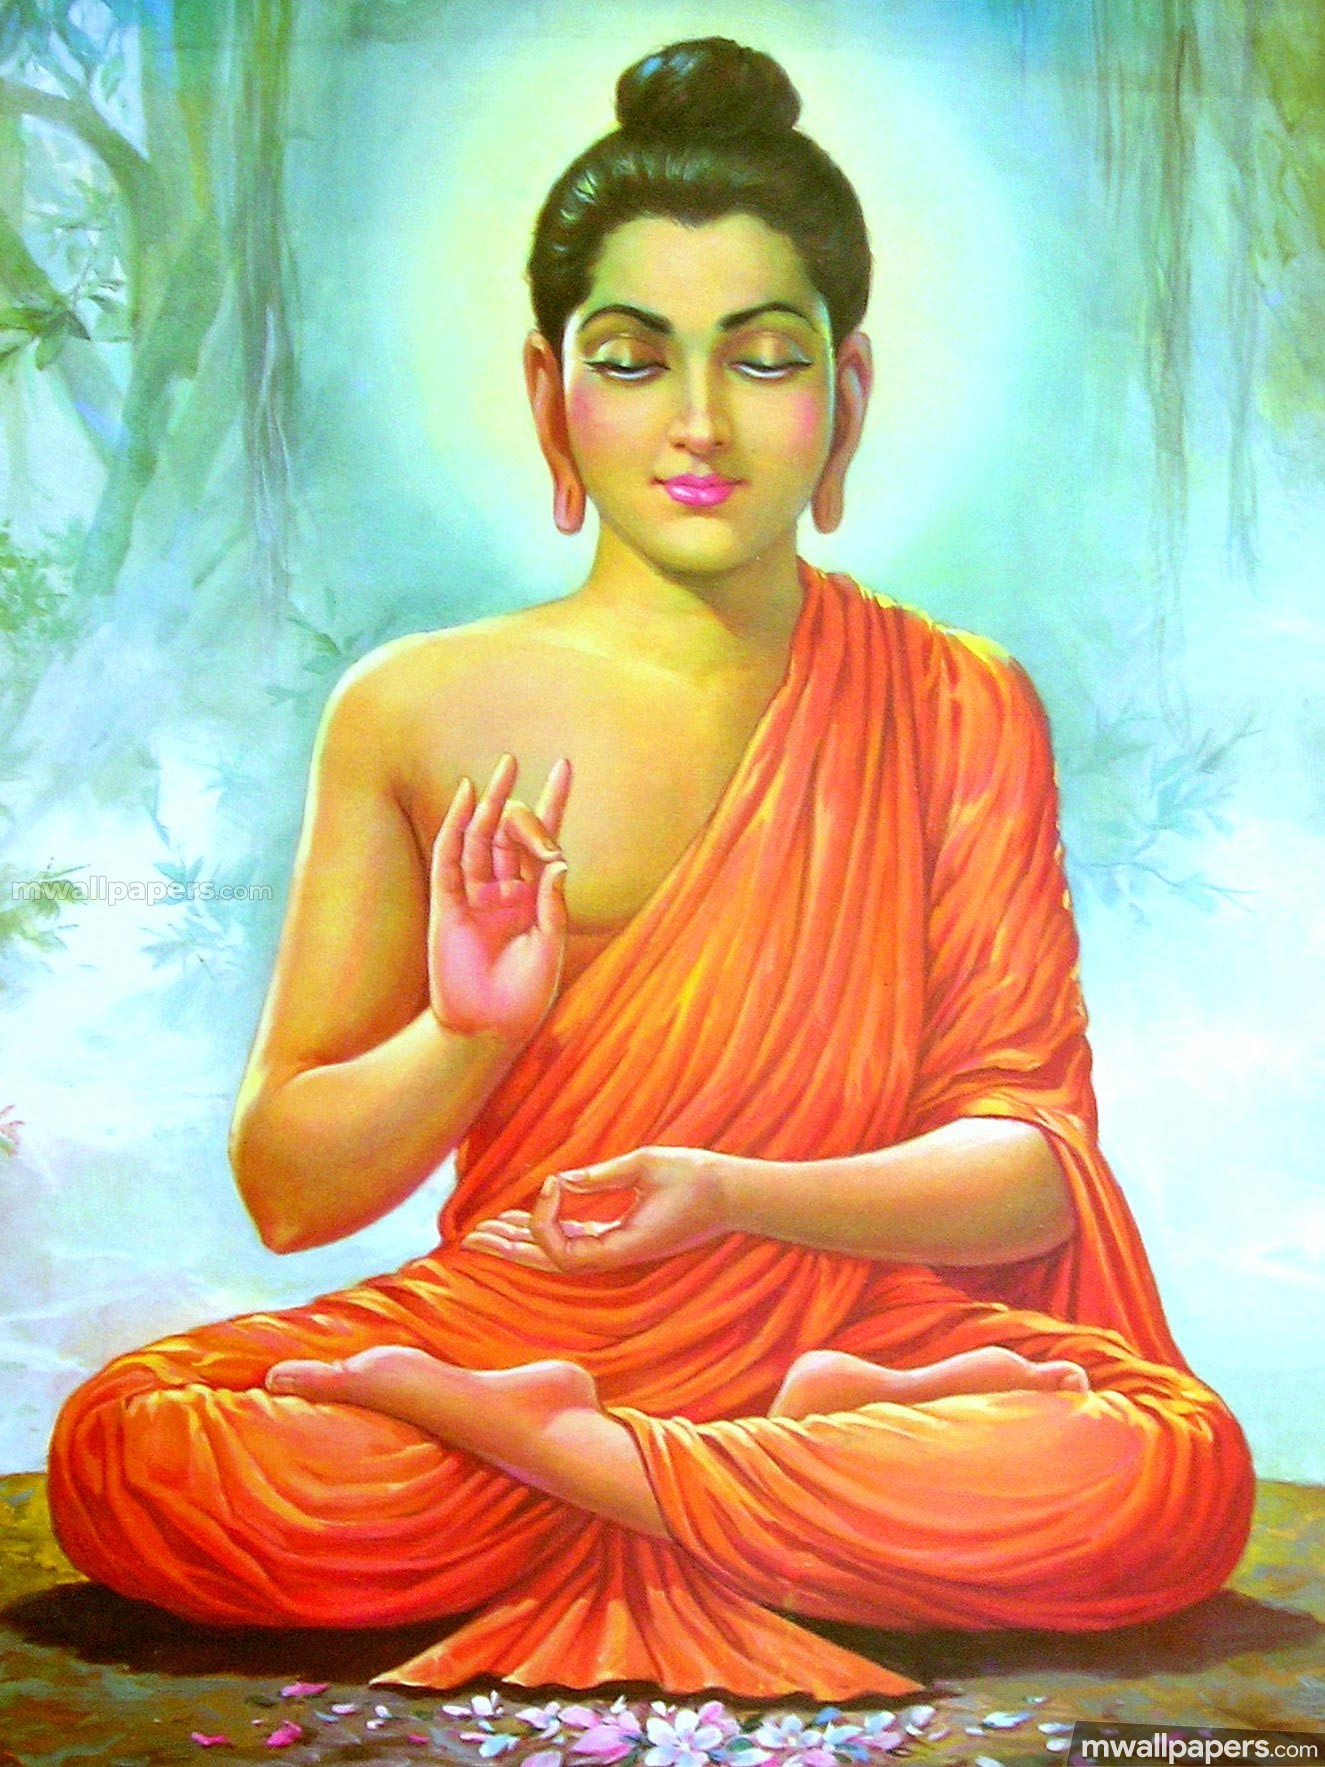 Buddha hd photos wallpapers 1080p android iphone ipad - Gautama buddha hd pics ...